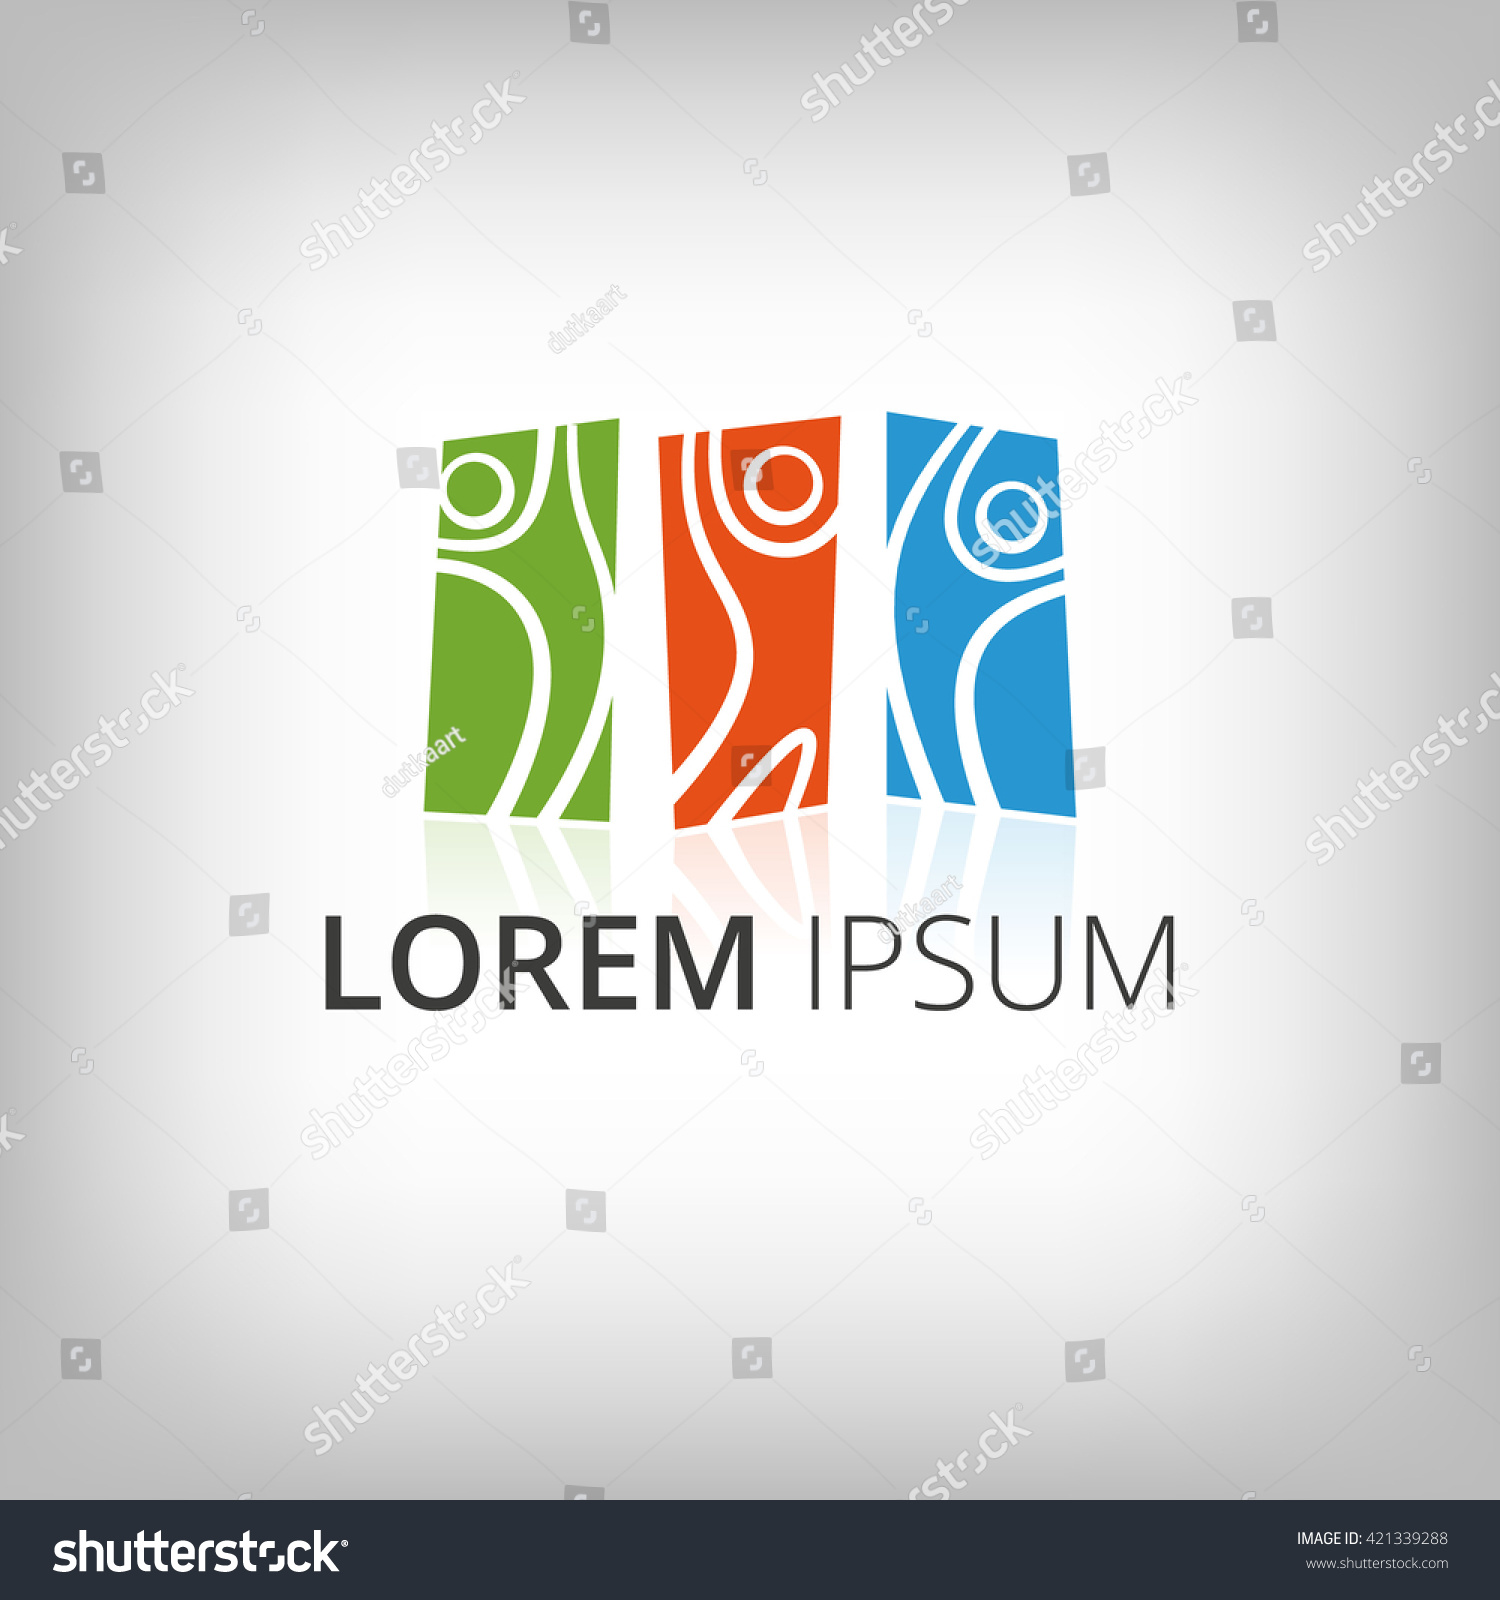 Abstract People Silhouettes Logo Design Template Stock Vector ...